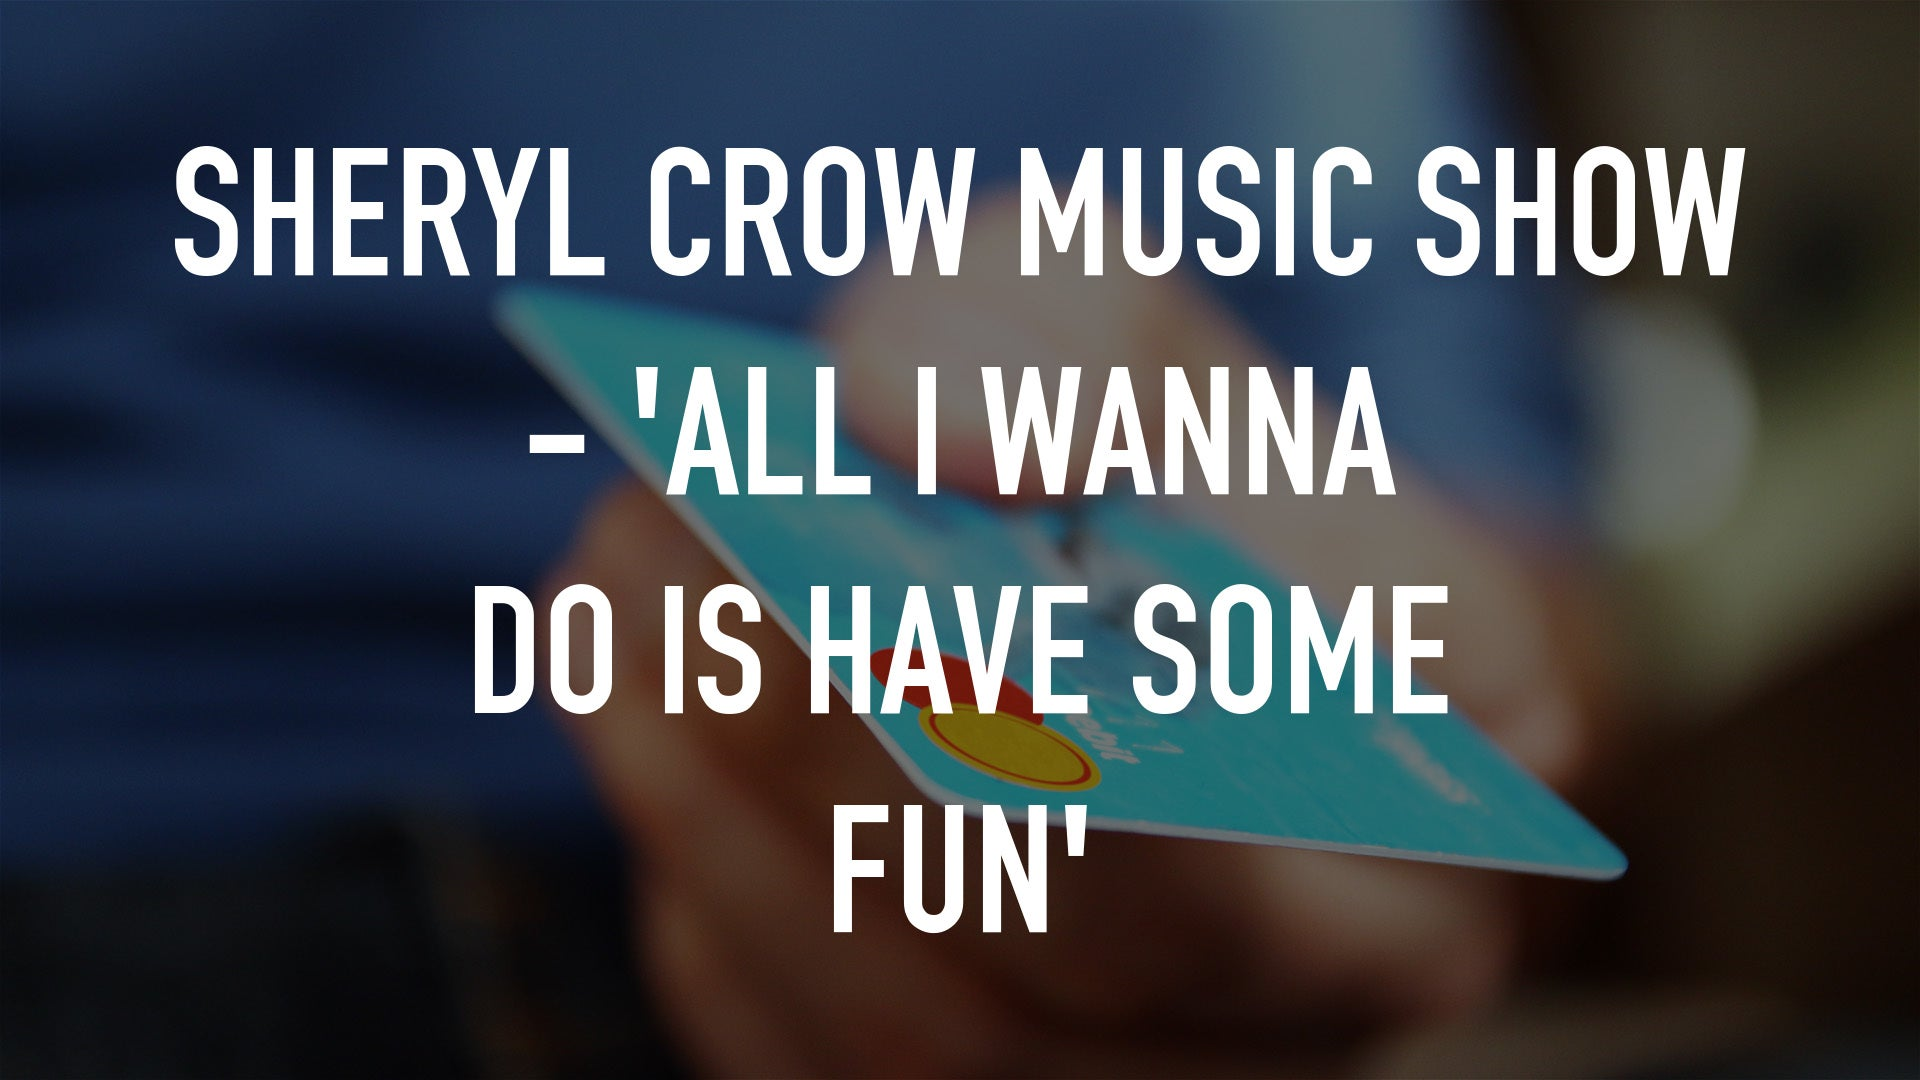 Sheryl Crow Music Show - 'All I Wanna Do Is Have Some Fun'